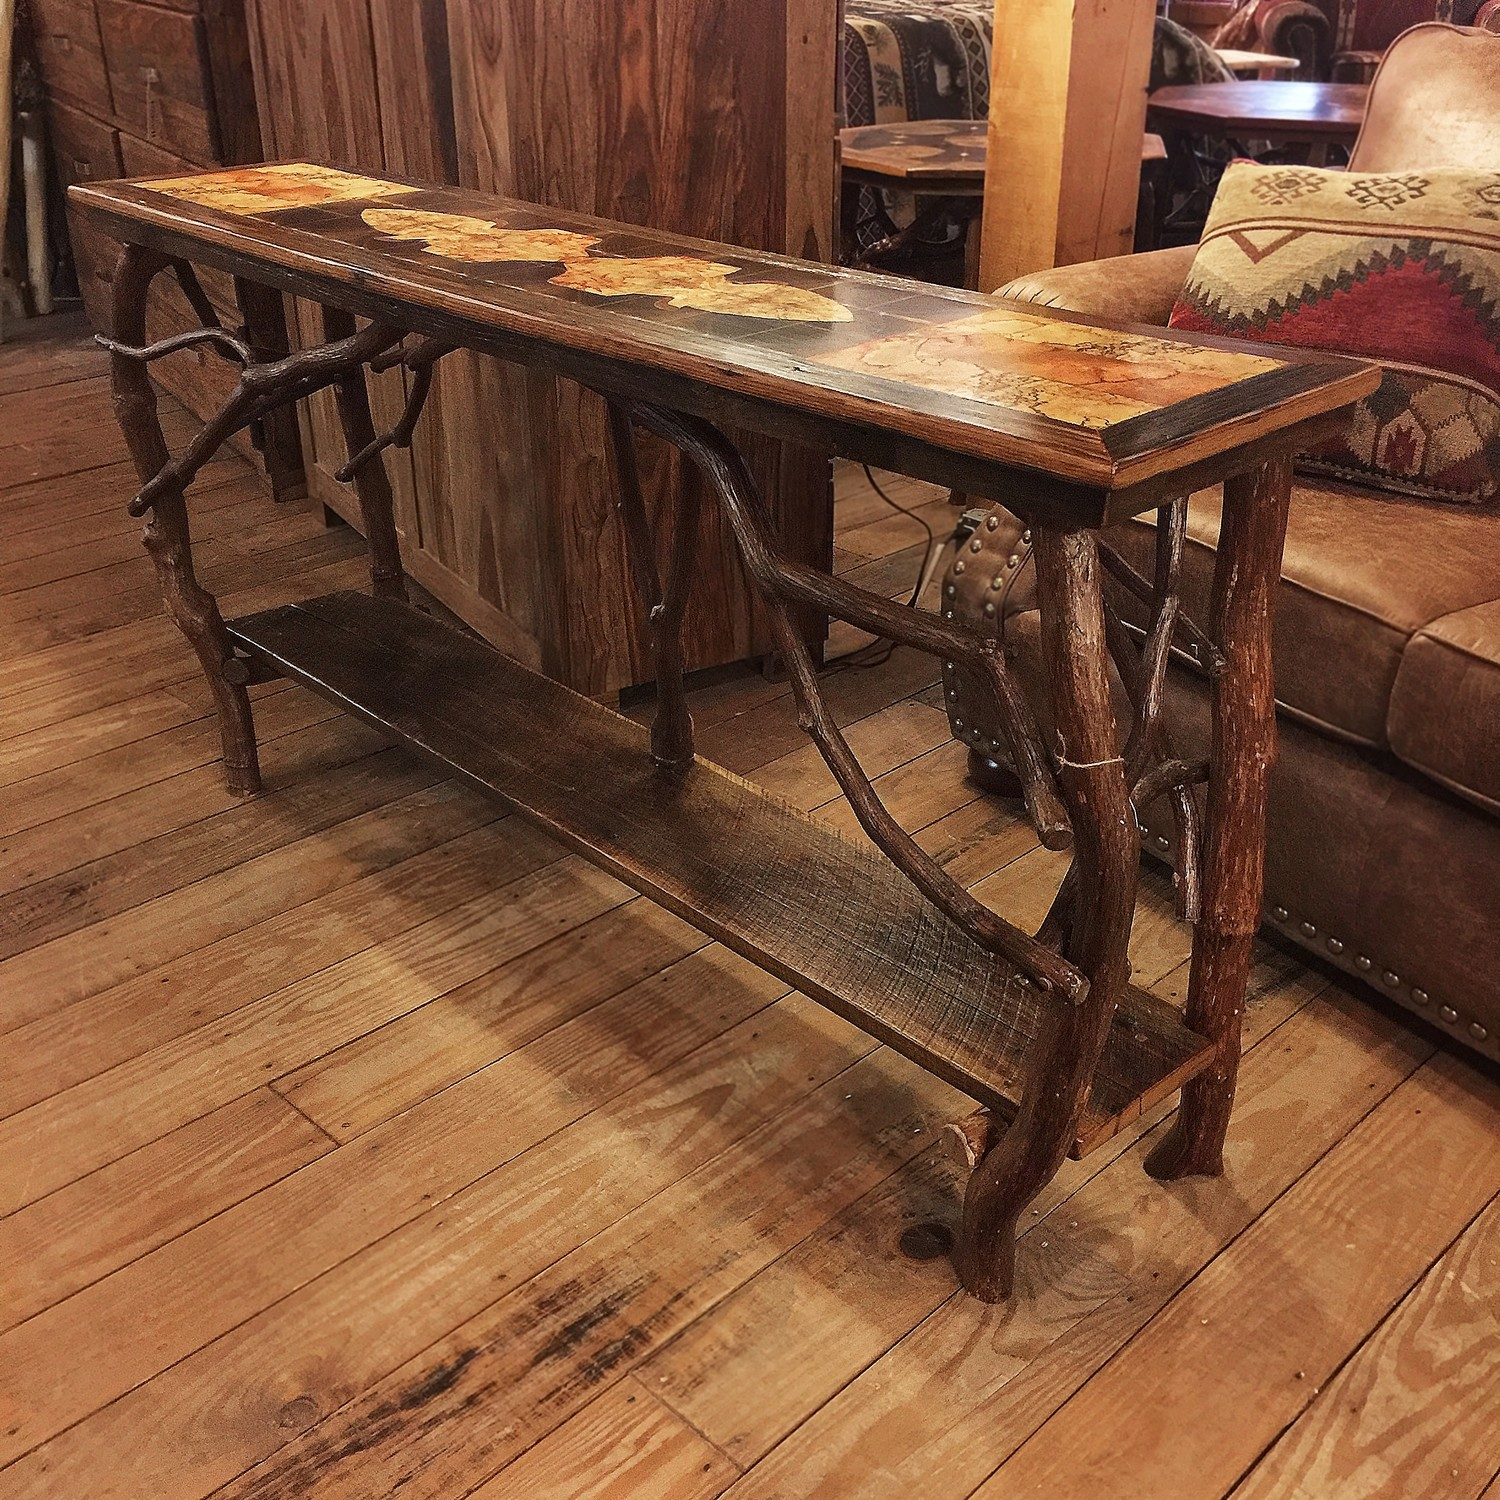 Inlaid Rustic Sofa Table with Shelf